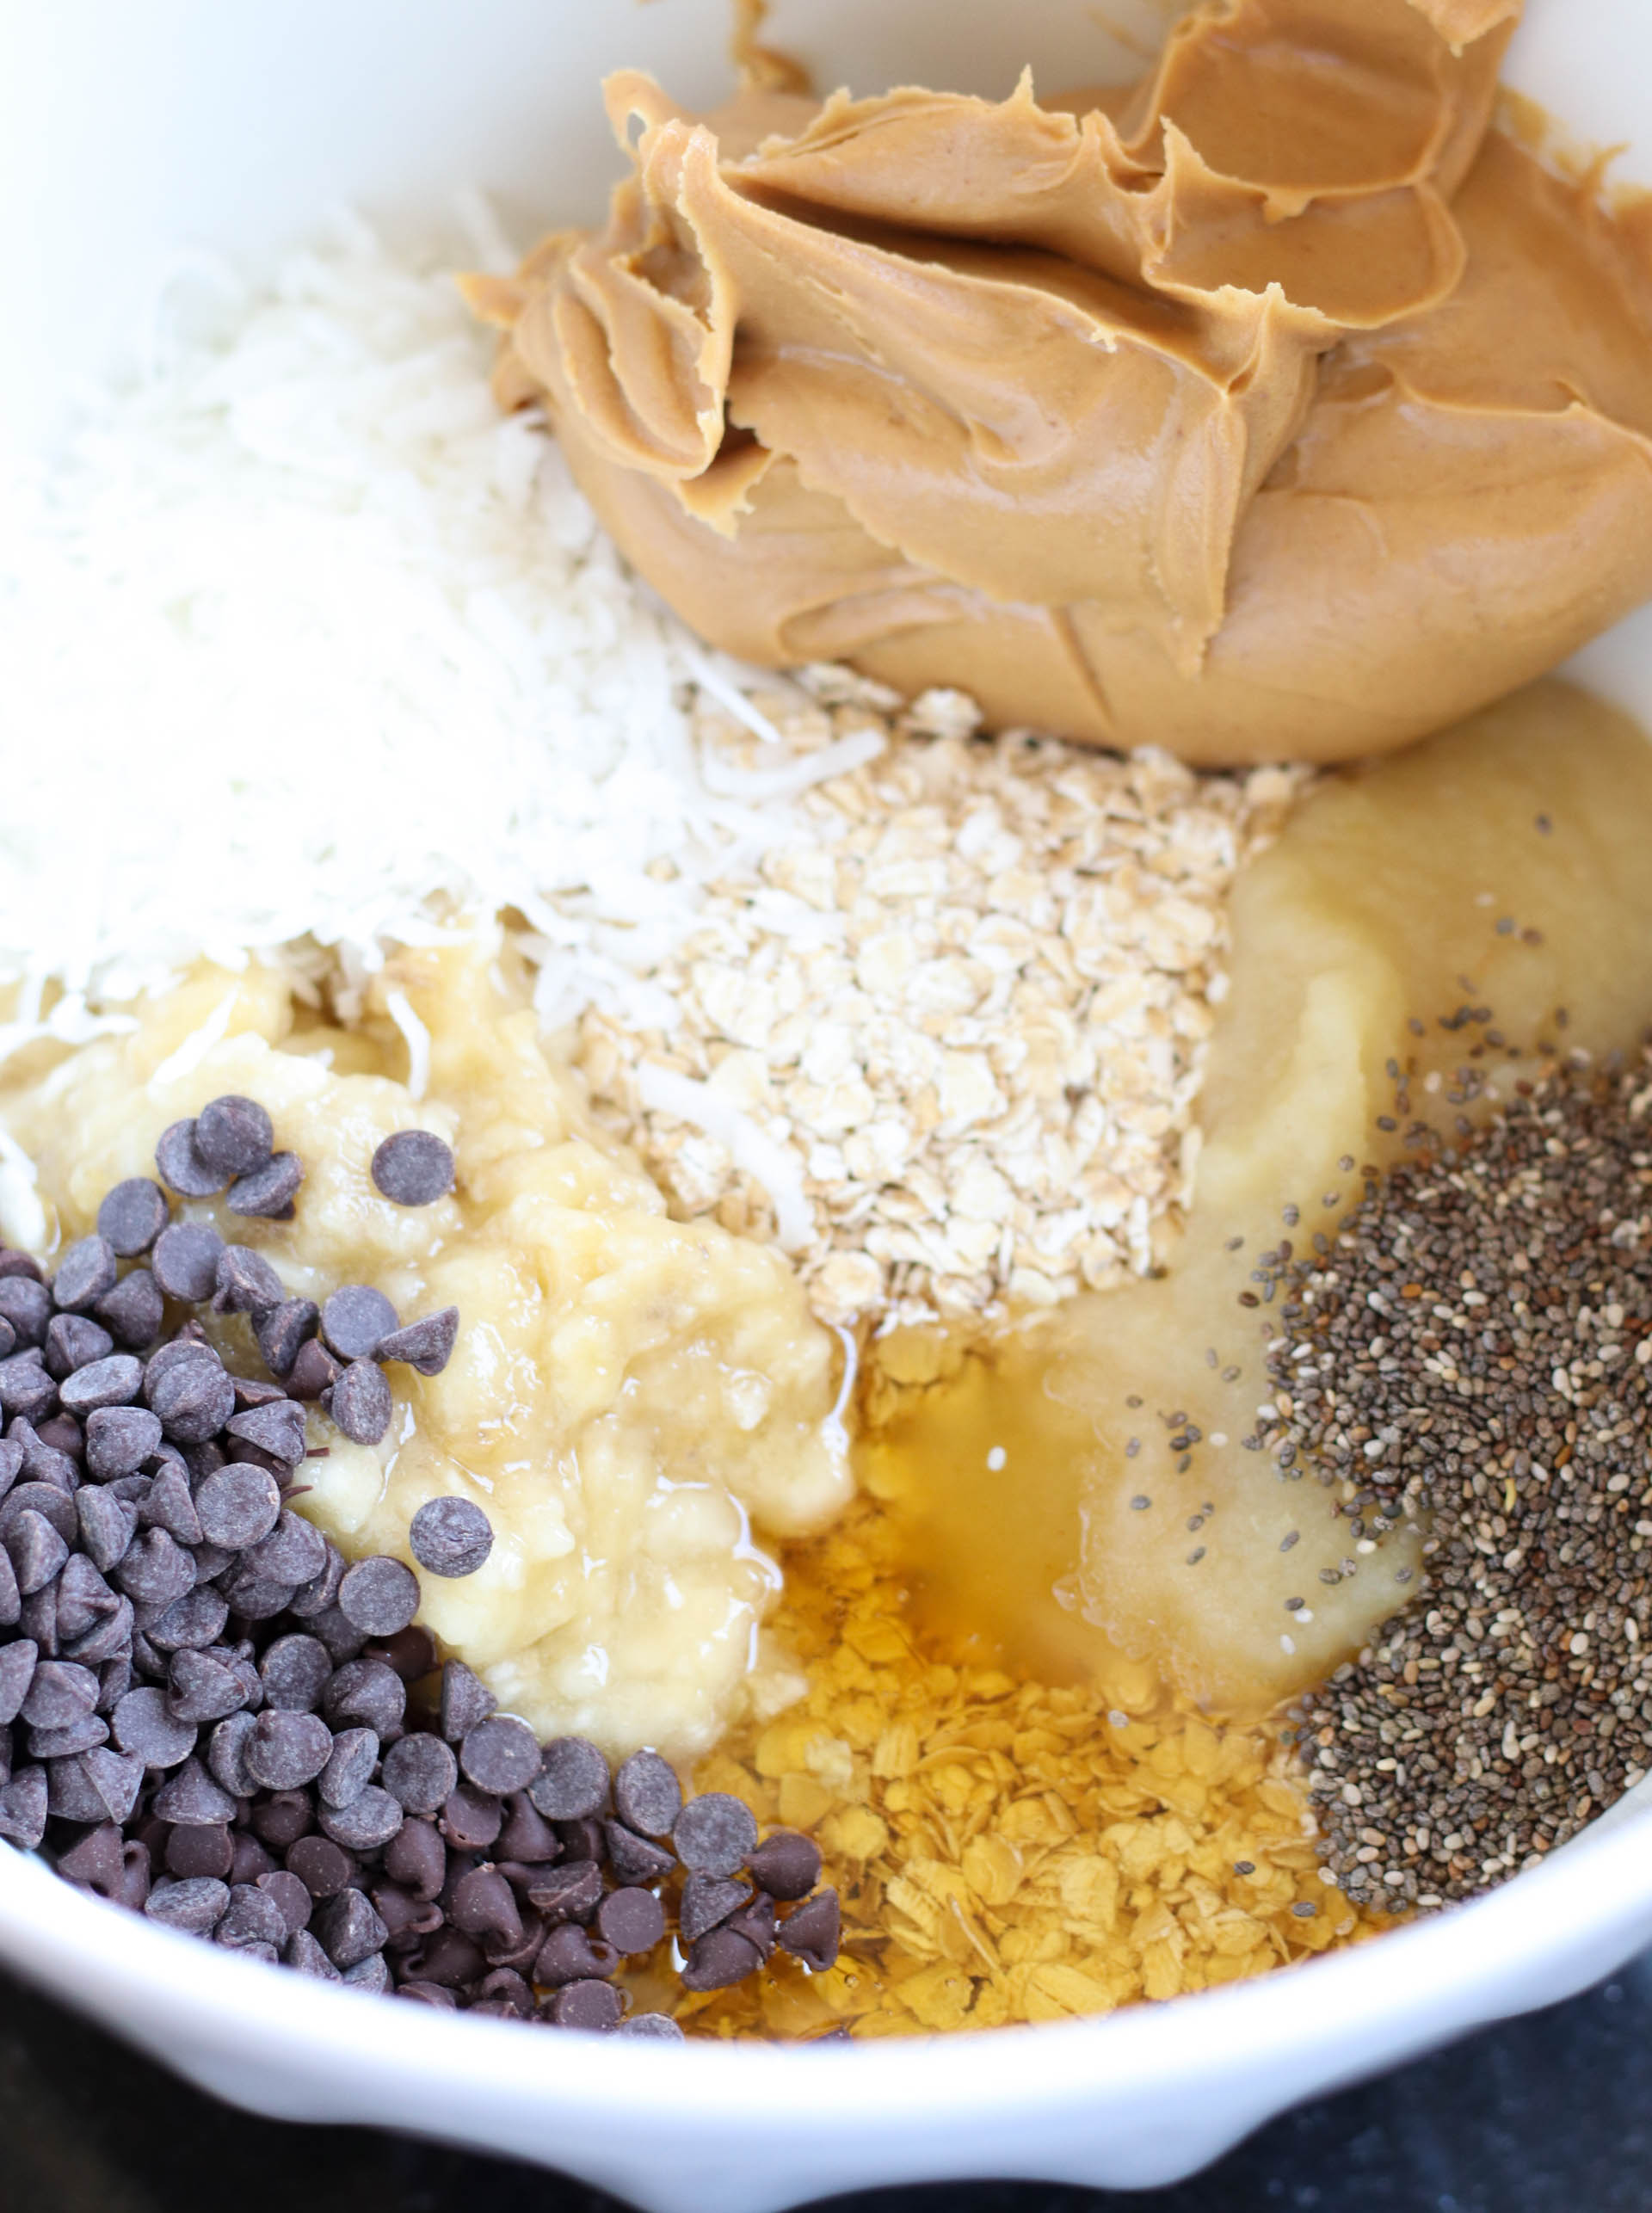 Ingredients for Breakfast Cookies in a white mixing bowl